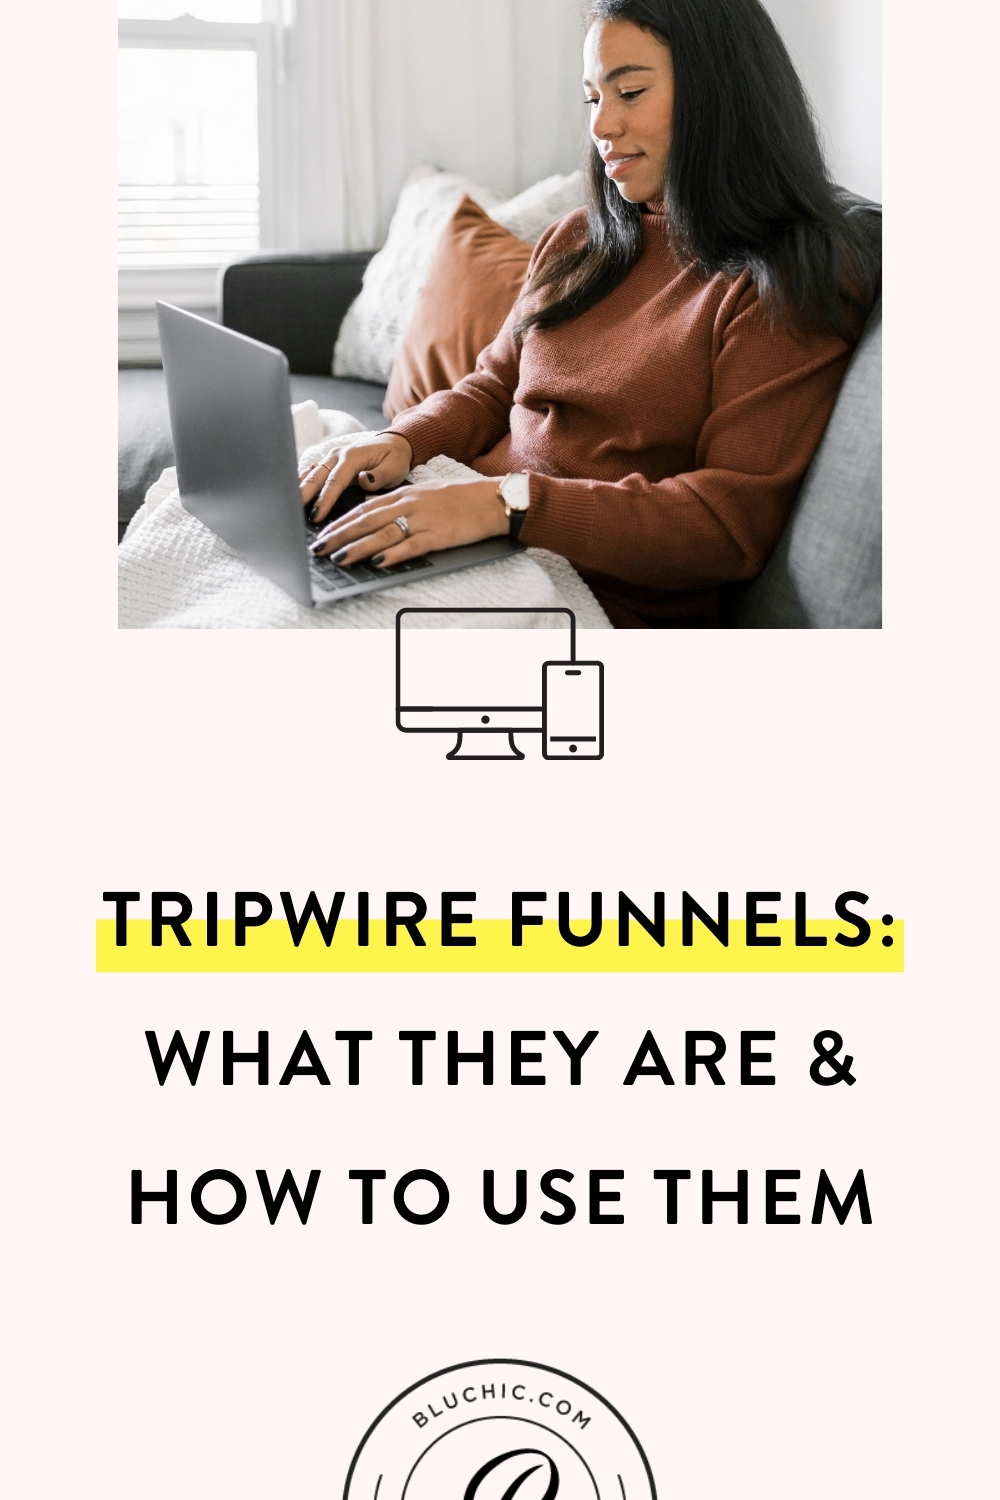 Tripwire Funnels: What They Are & How to Use Them | What is a tripwire funnel, and how do you use them? We're breaking down everything you need to know about tripwire marketing here.